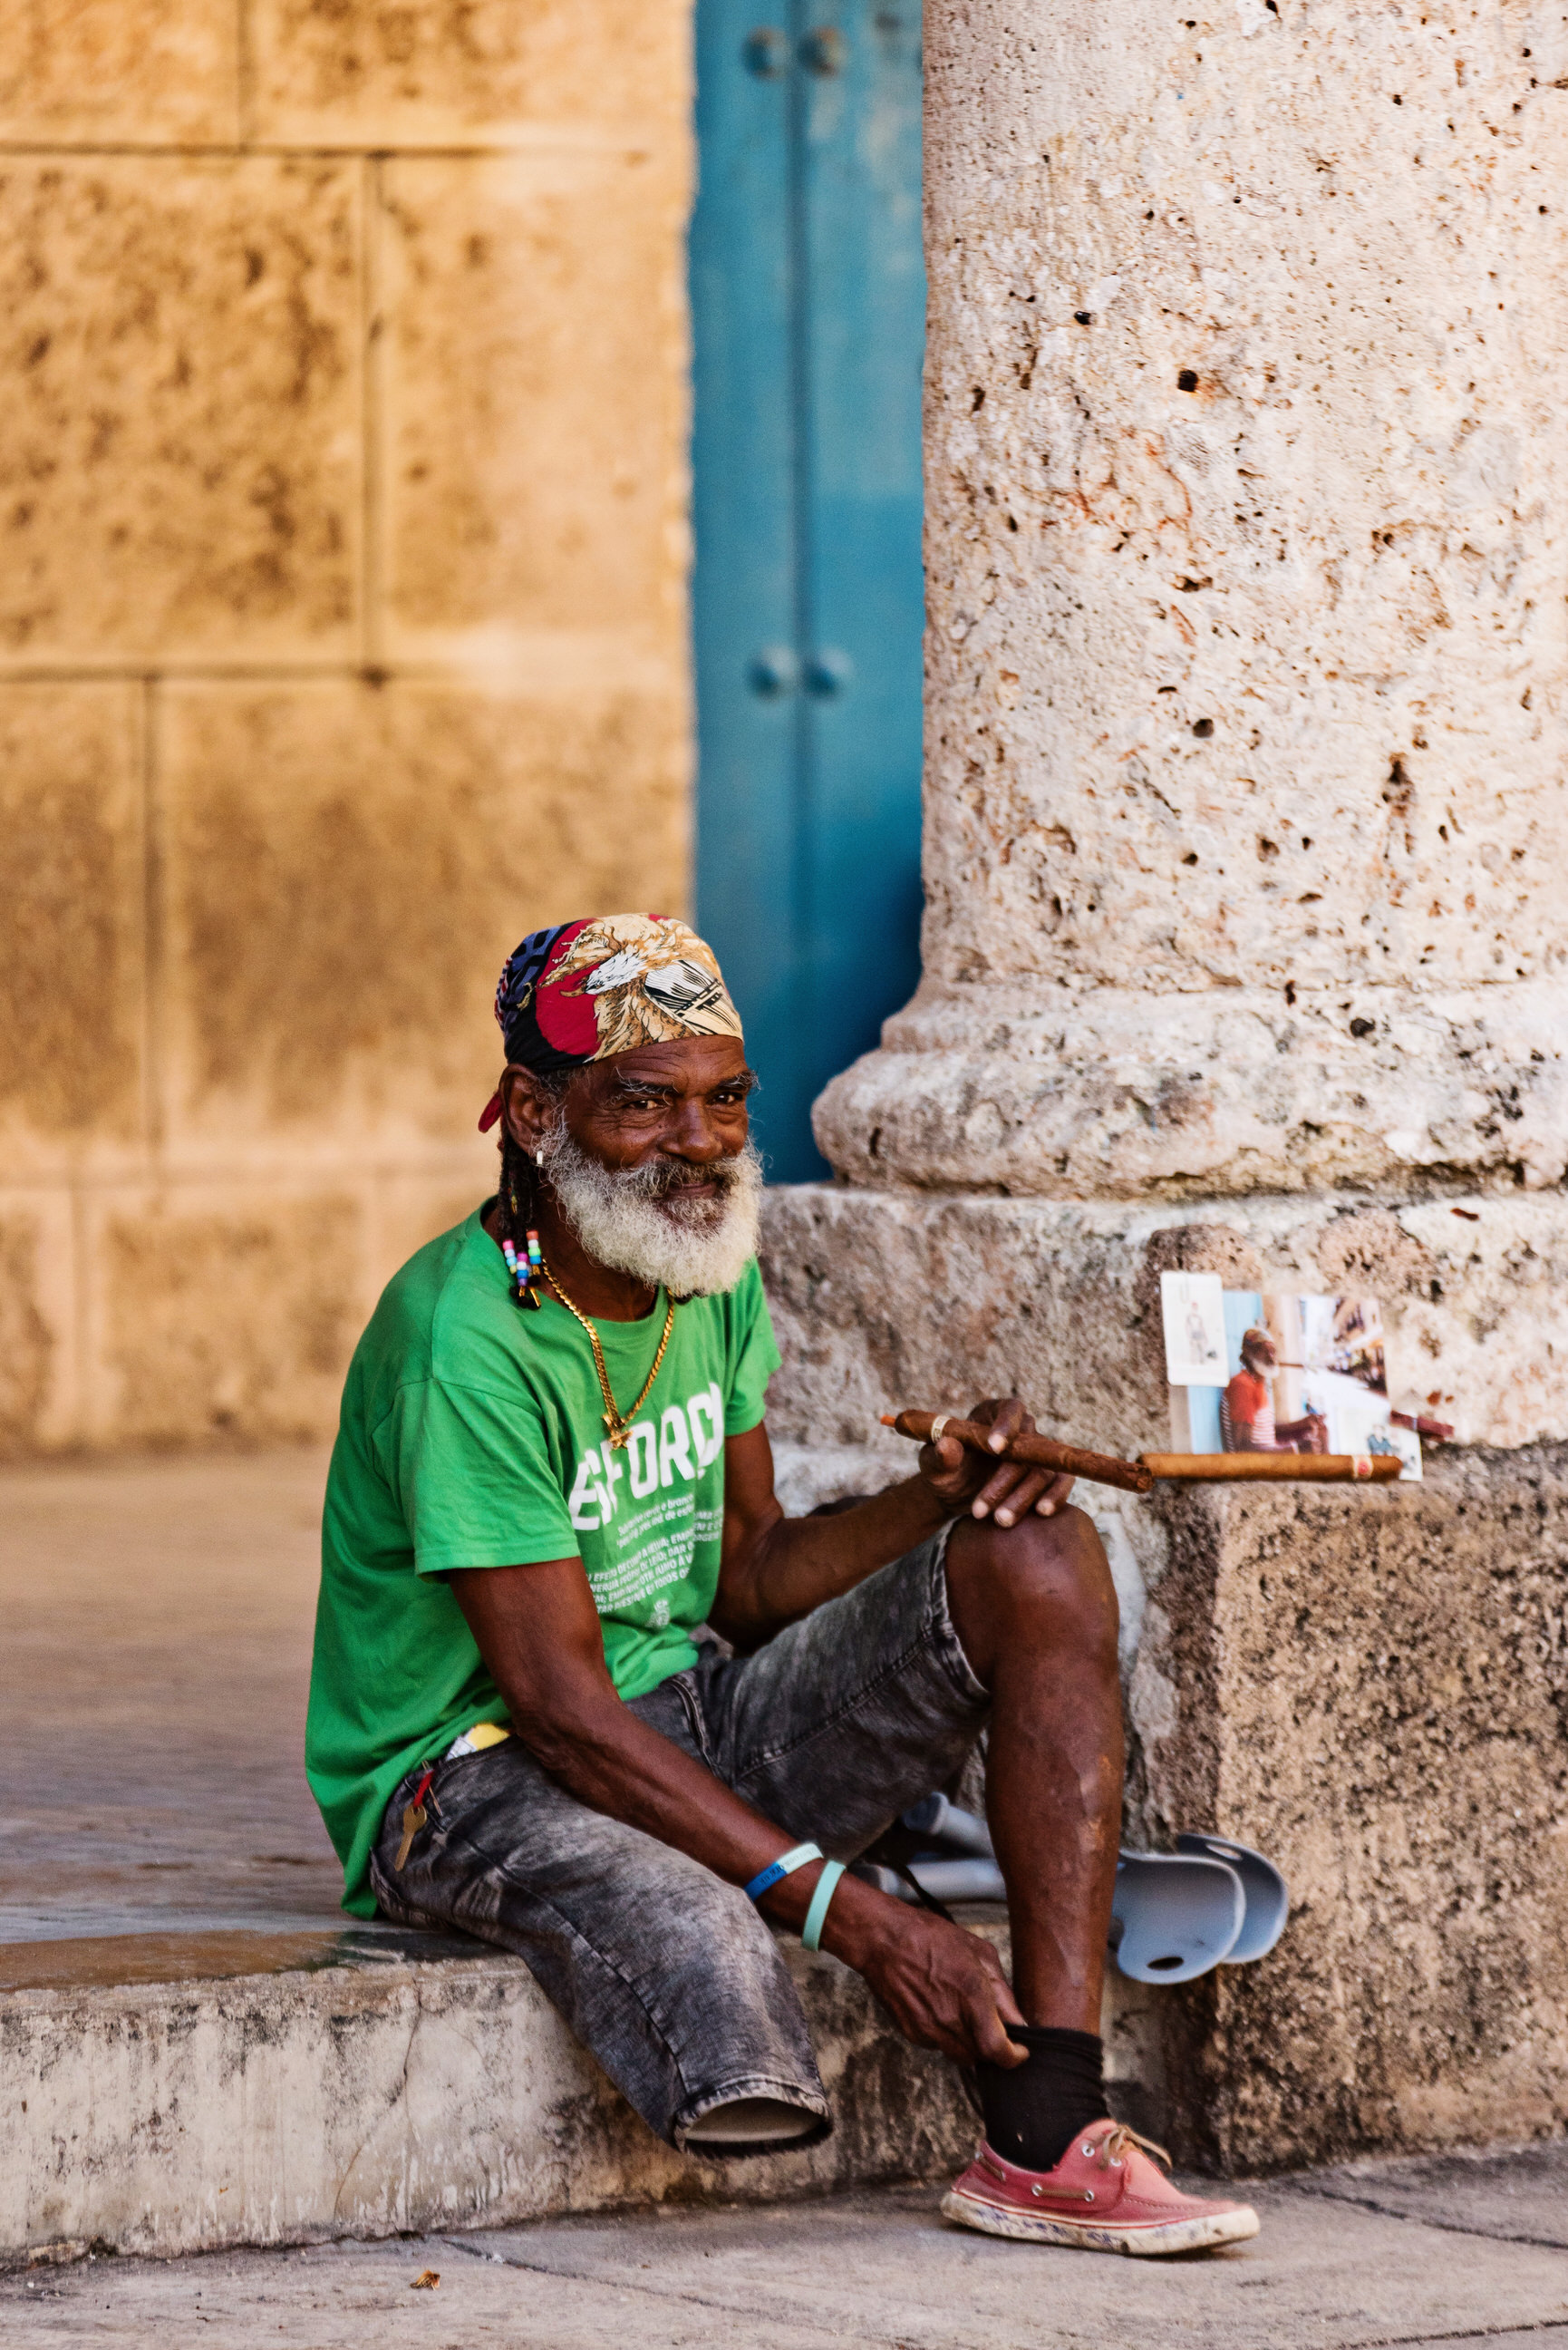 CubaPeople-88.jpg